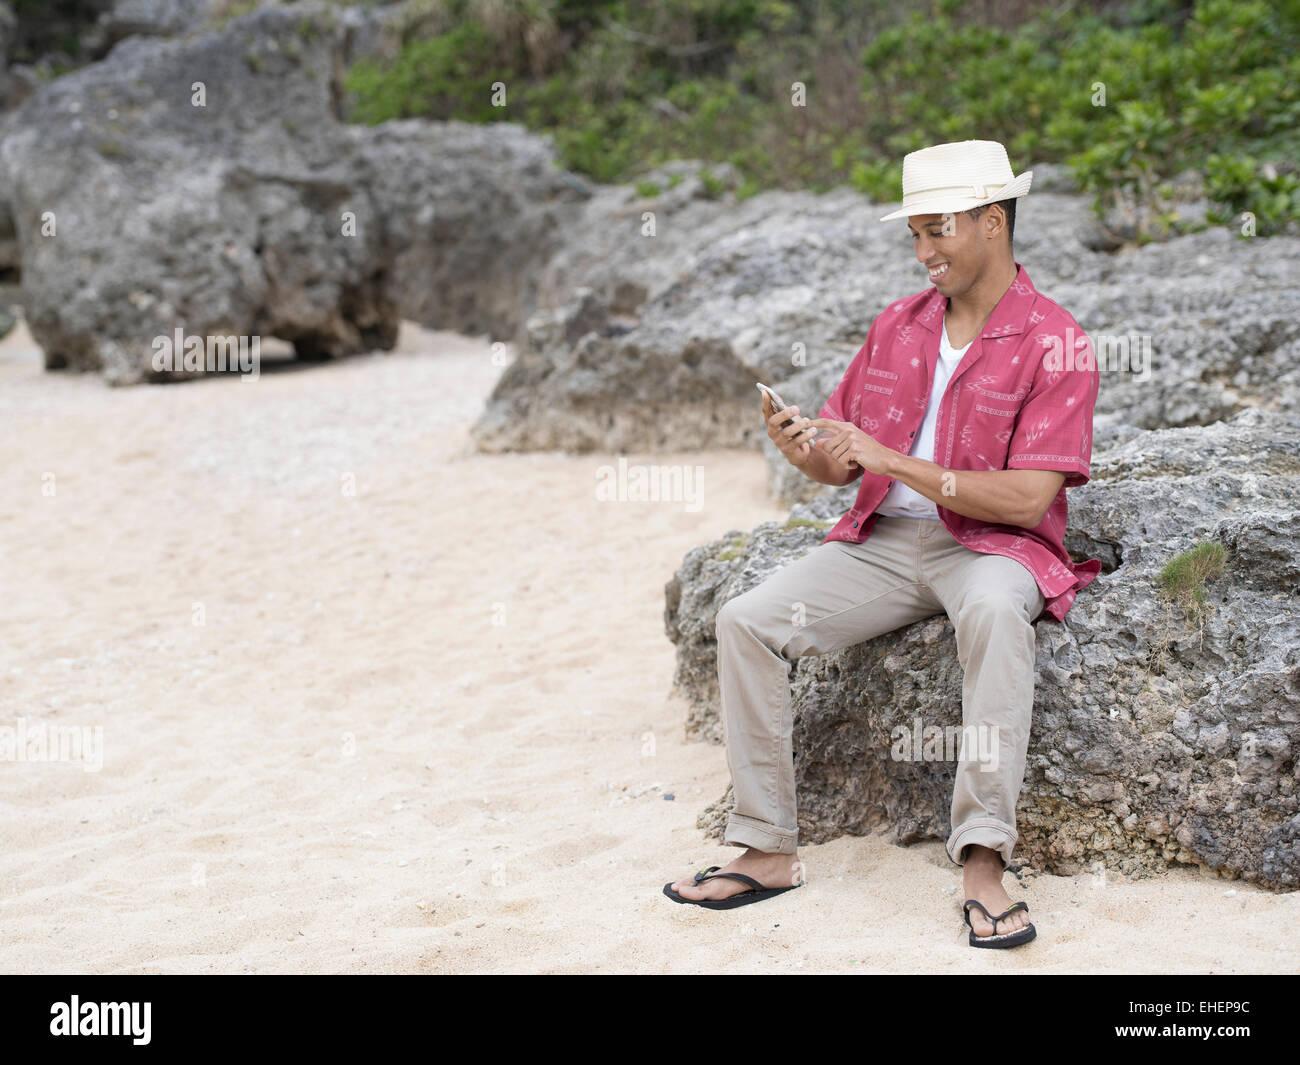 Man texting / checking internet on Apple iphone 6 smartphone while at the beach - Stock Image